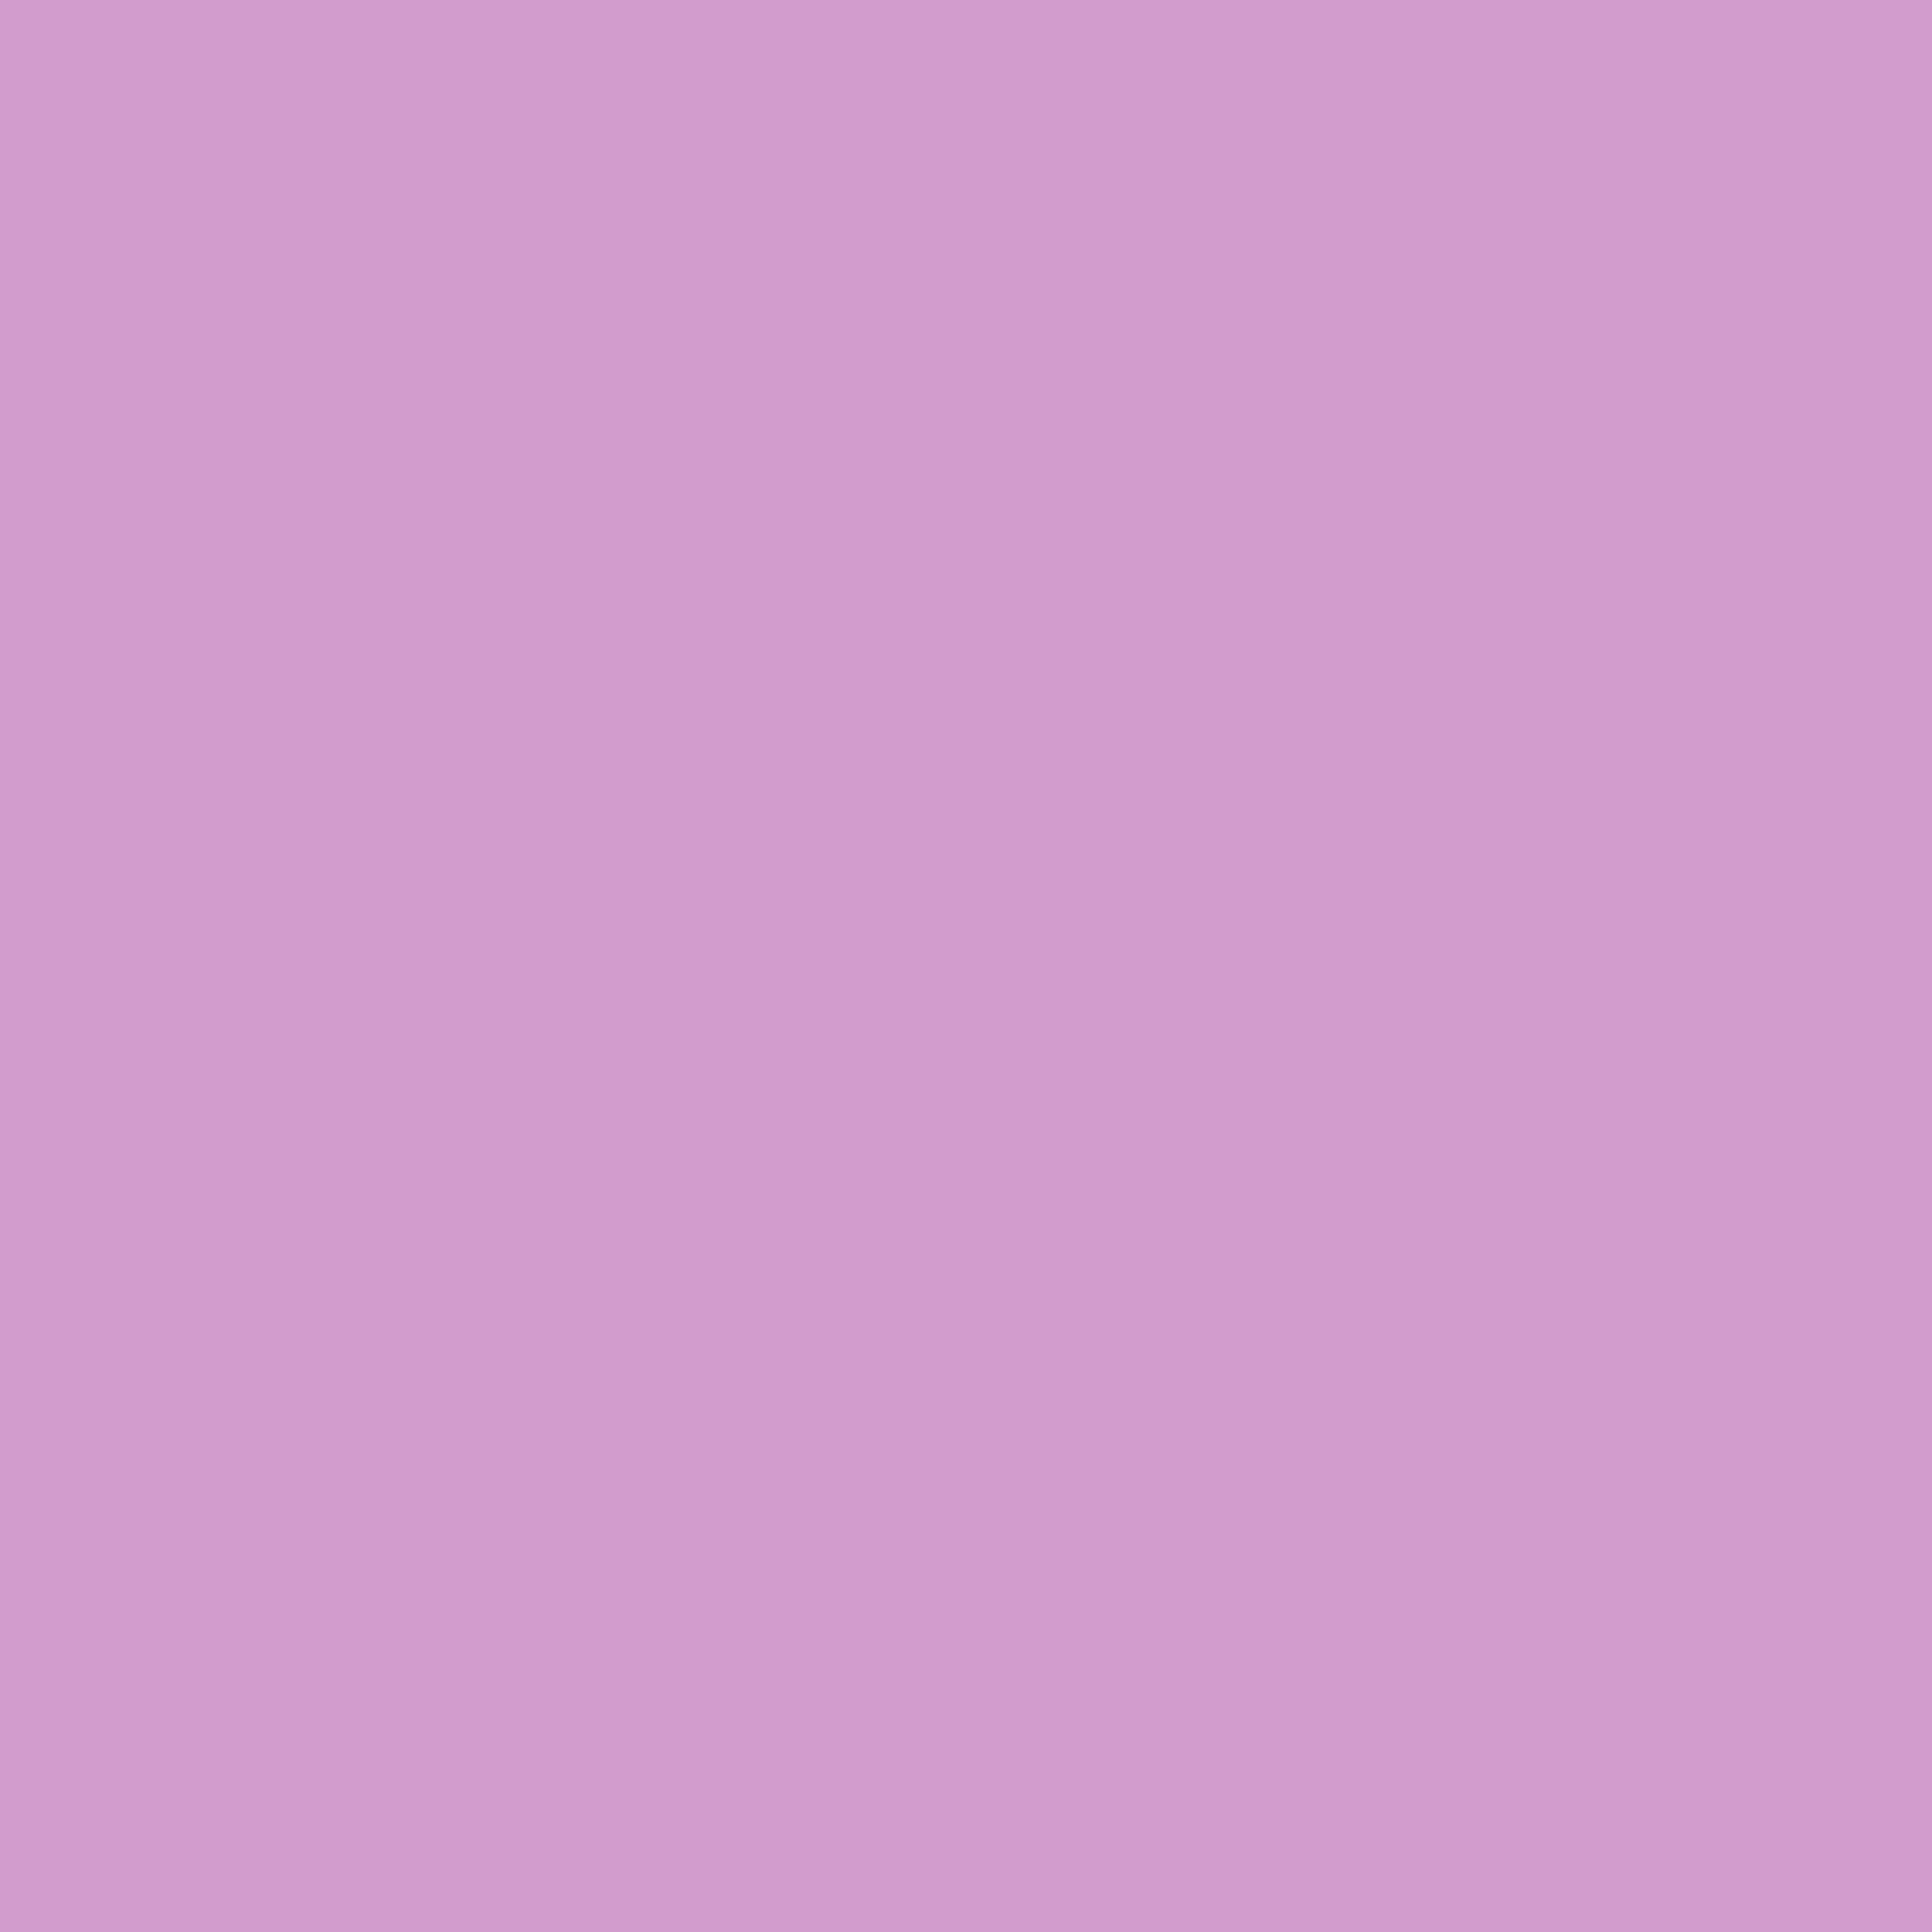 3600x3600 Light Medium Orchid Solid Color Background